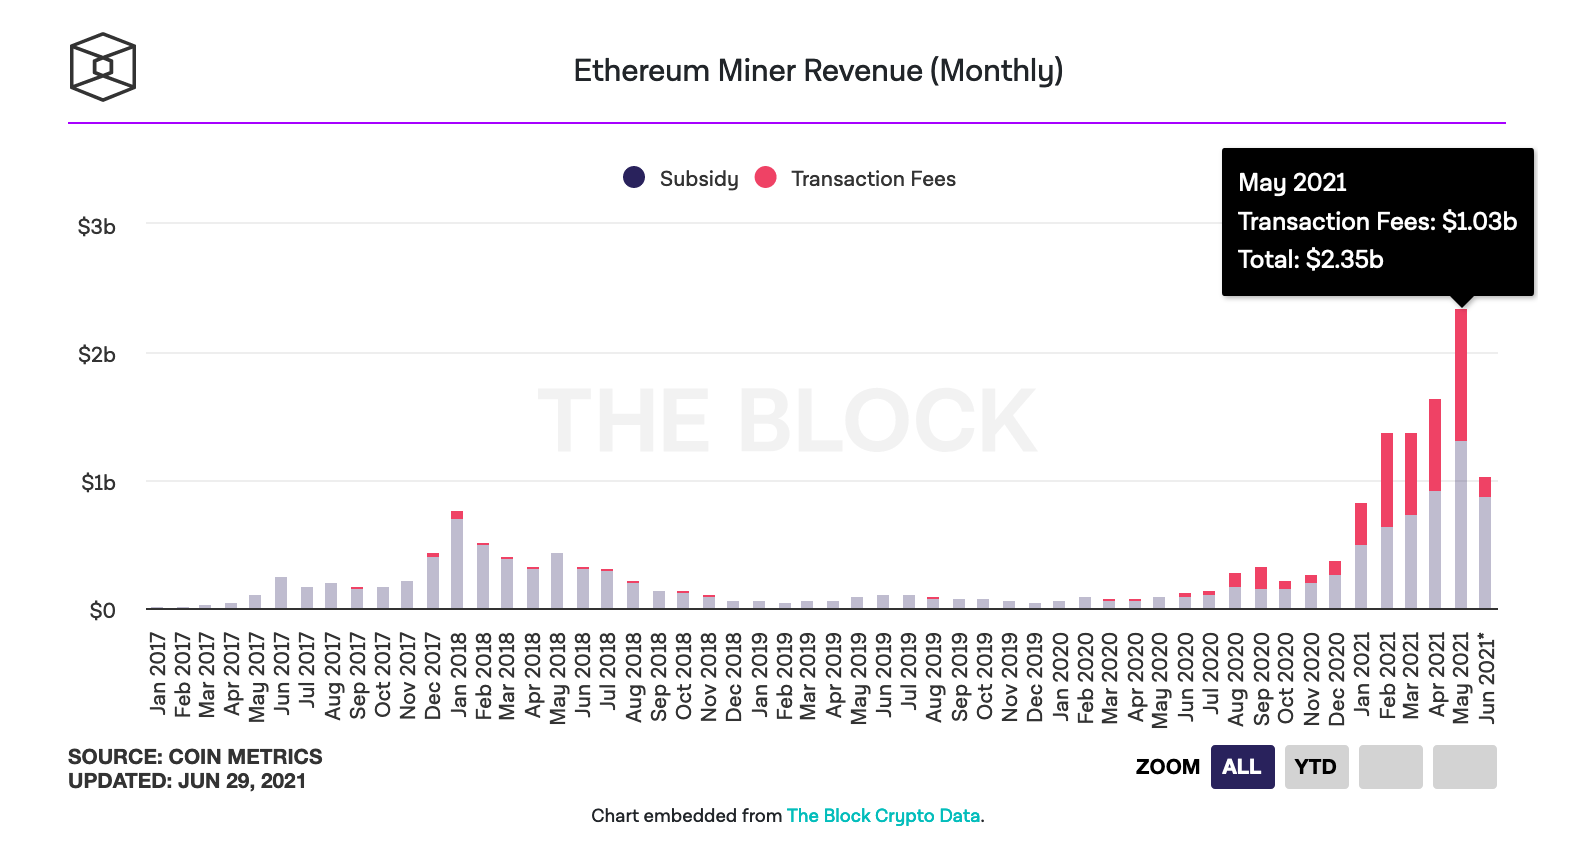 Chart showing that Ethereum miner revenues reached a record high of $1.03 billion in May 2021 (for a total of $2.35 billion in fees if you include Ethereum's miner subsidies)